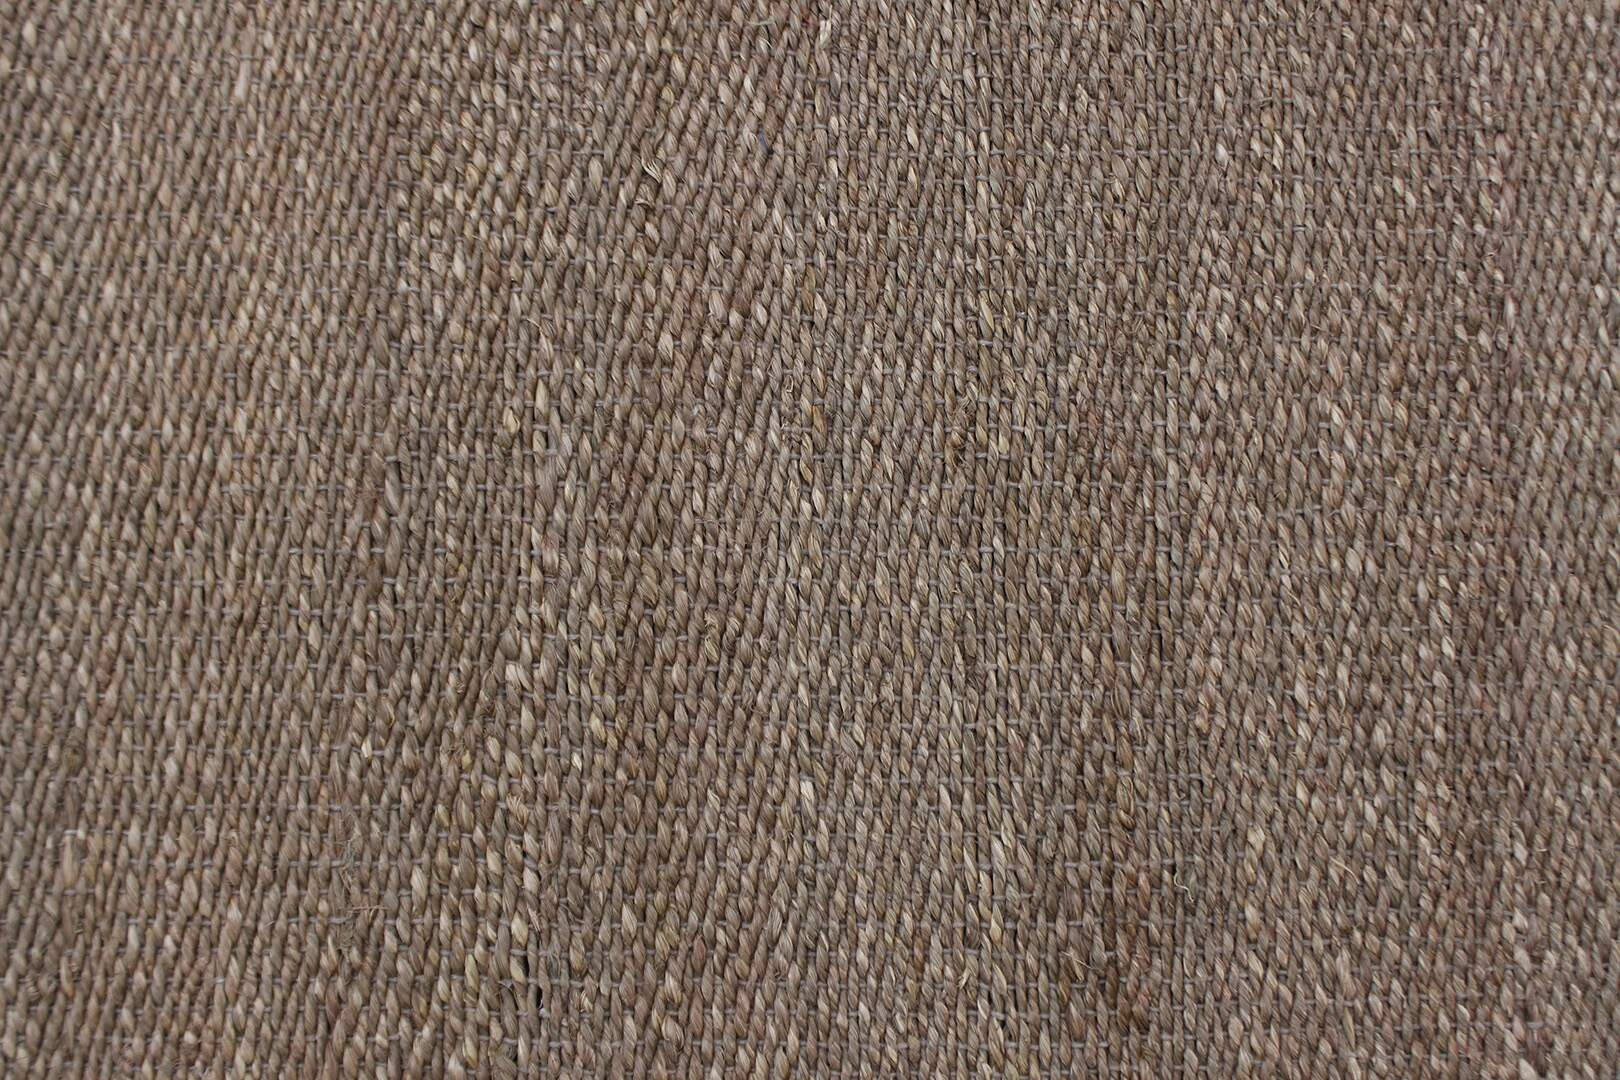 Tapete Kilim Moderno Nepal Seagrass Bege 1,50 x 2,00m